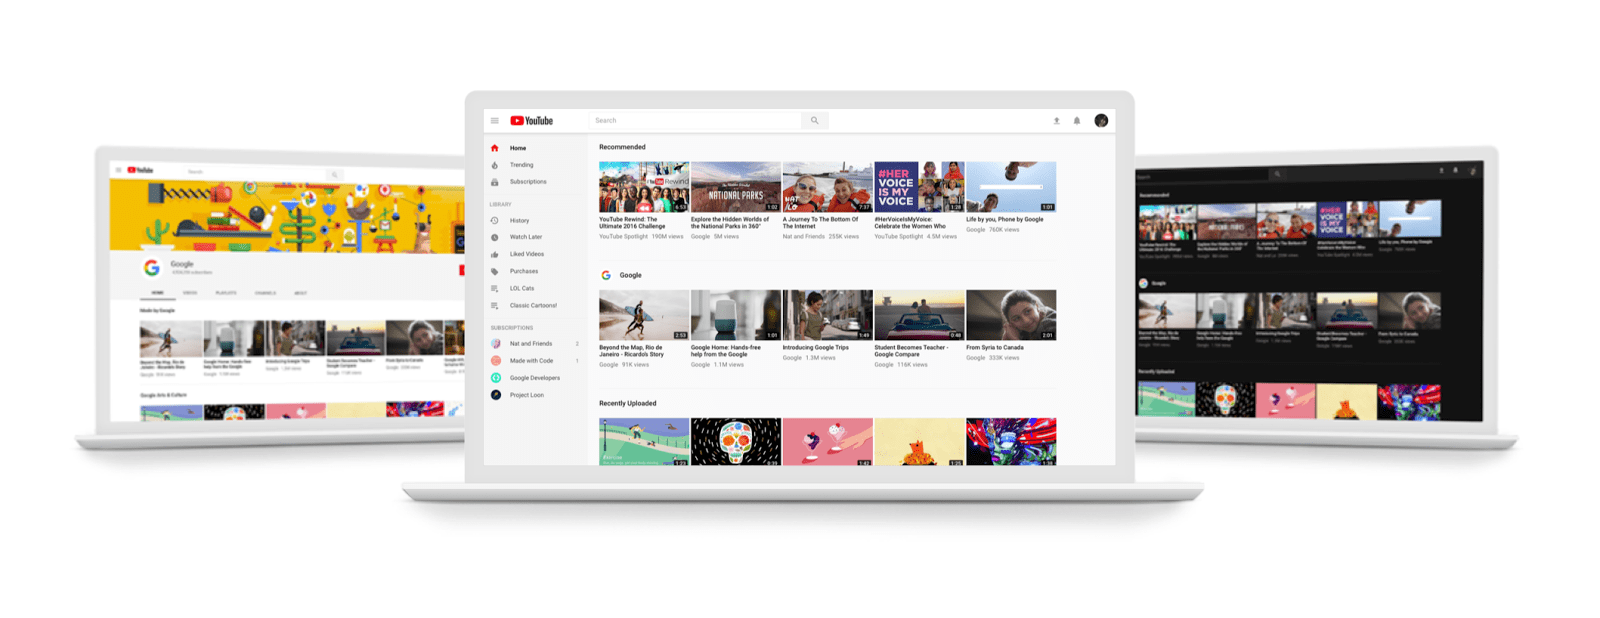 youtube s big desktop redesign is now available to everyone